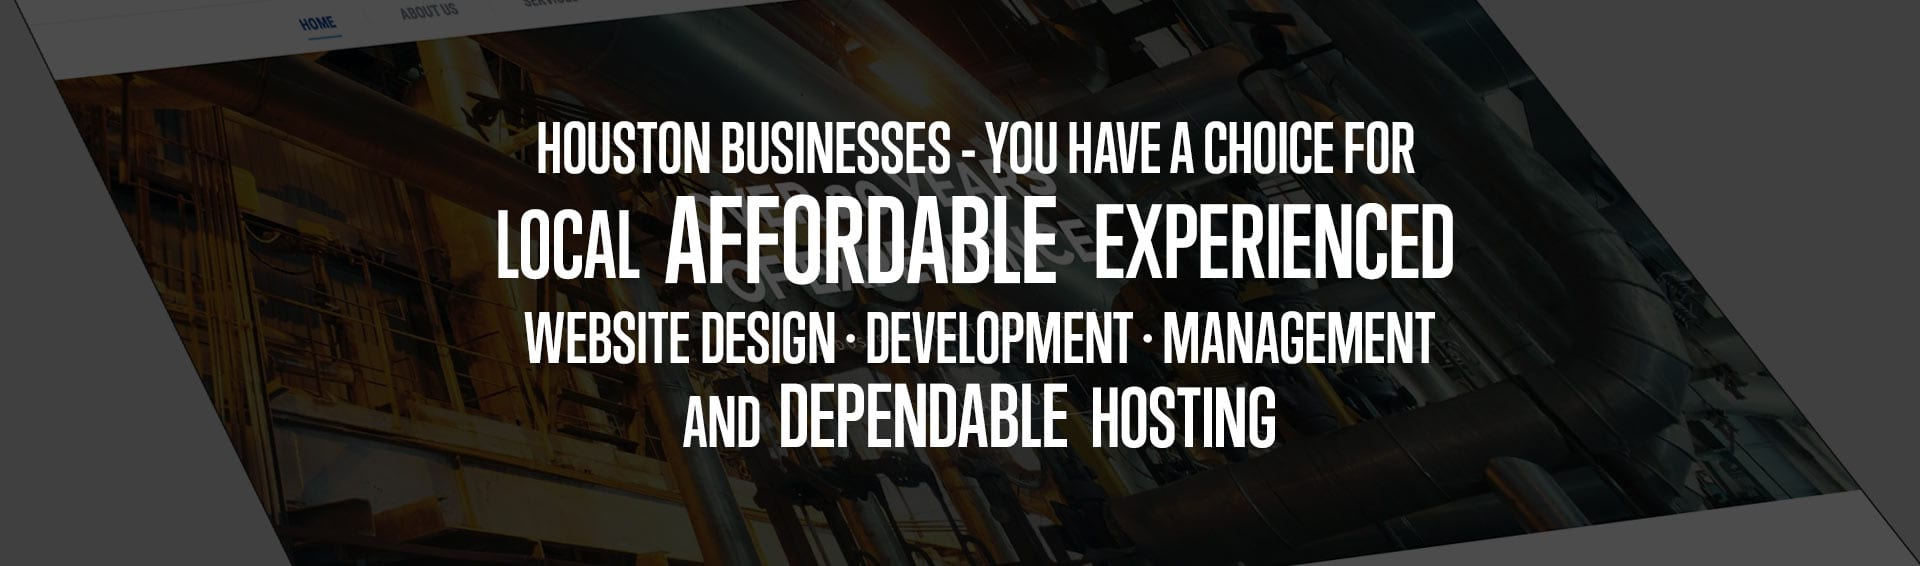 Houston businesses - you have a choice for local affordable experienced website design development management and dependable hosting